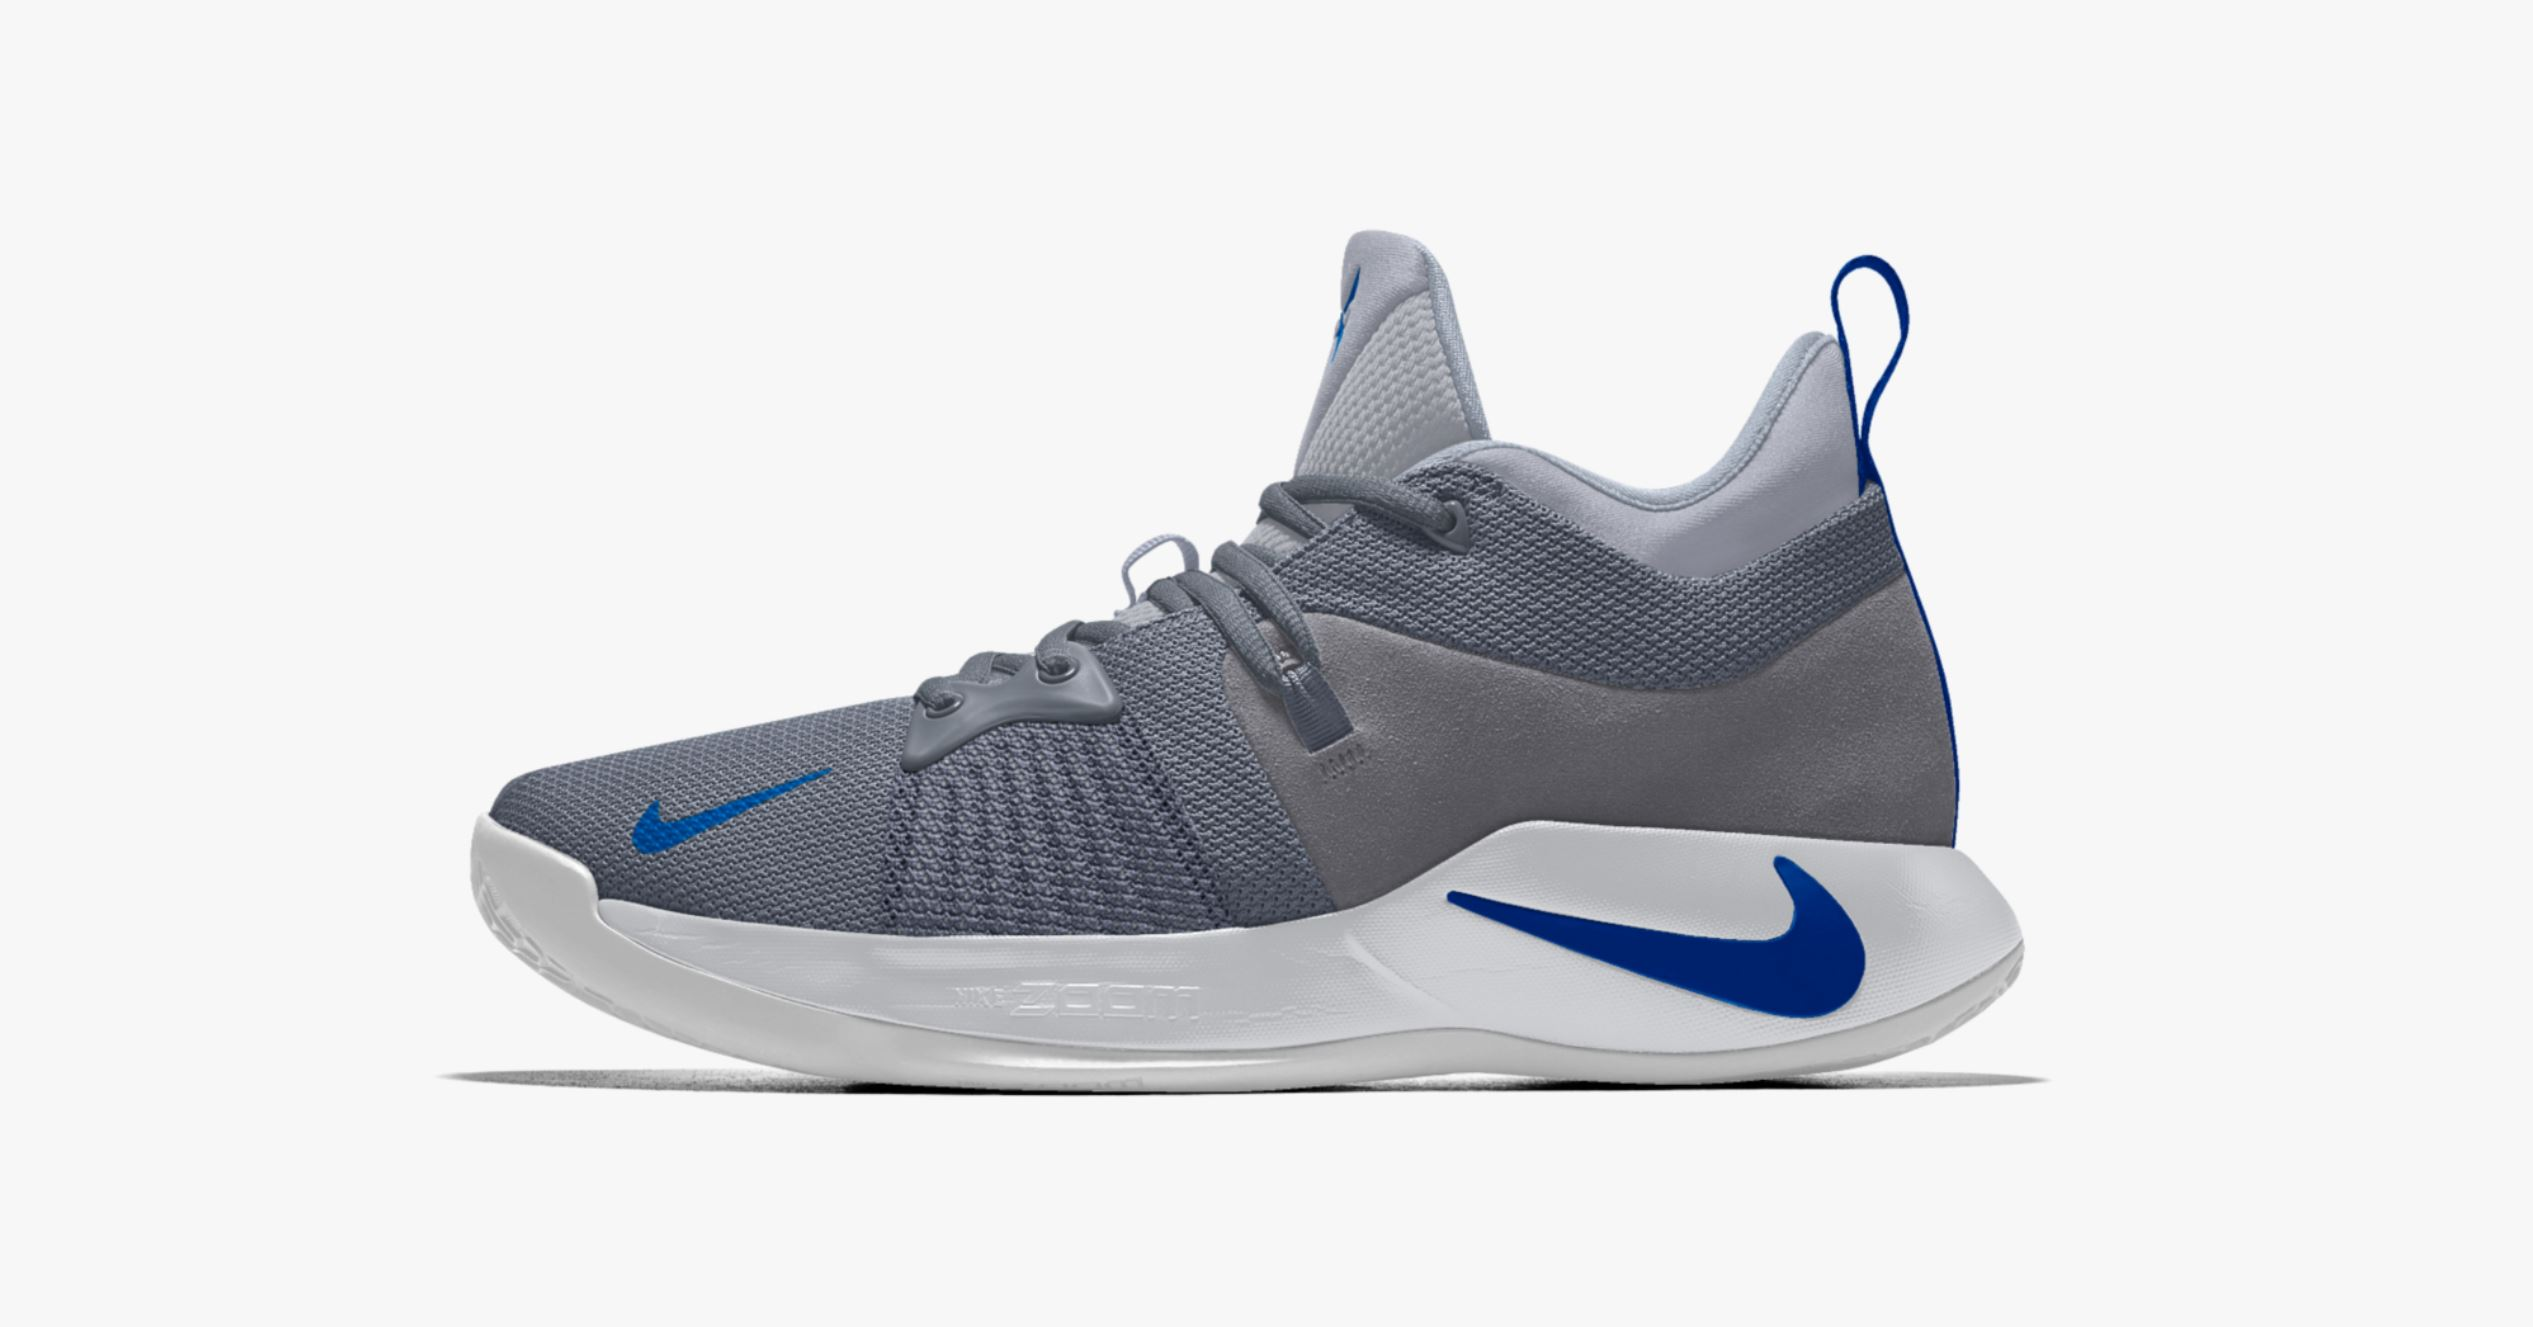 The Nike PG 2 is Now Available for Customization on NikeiD